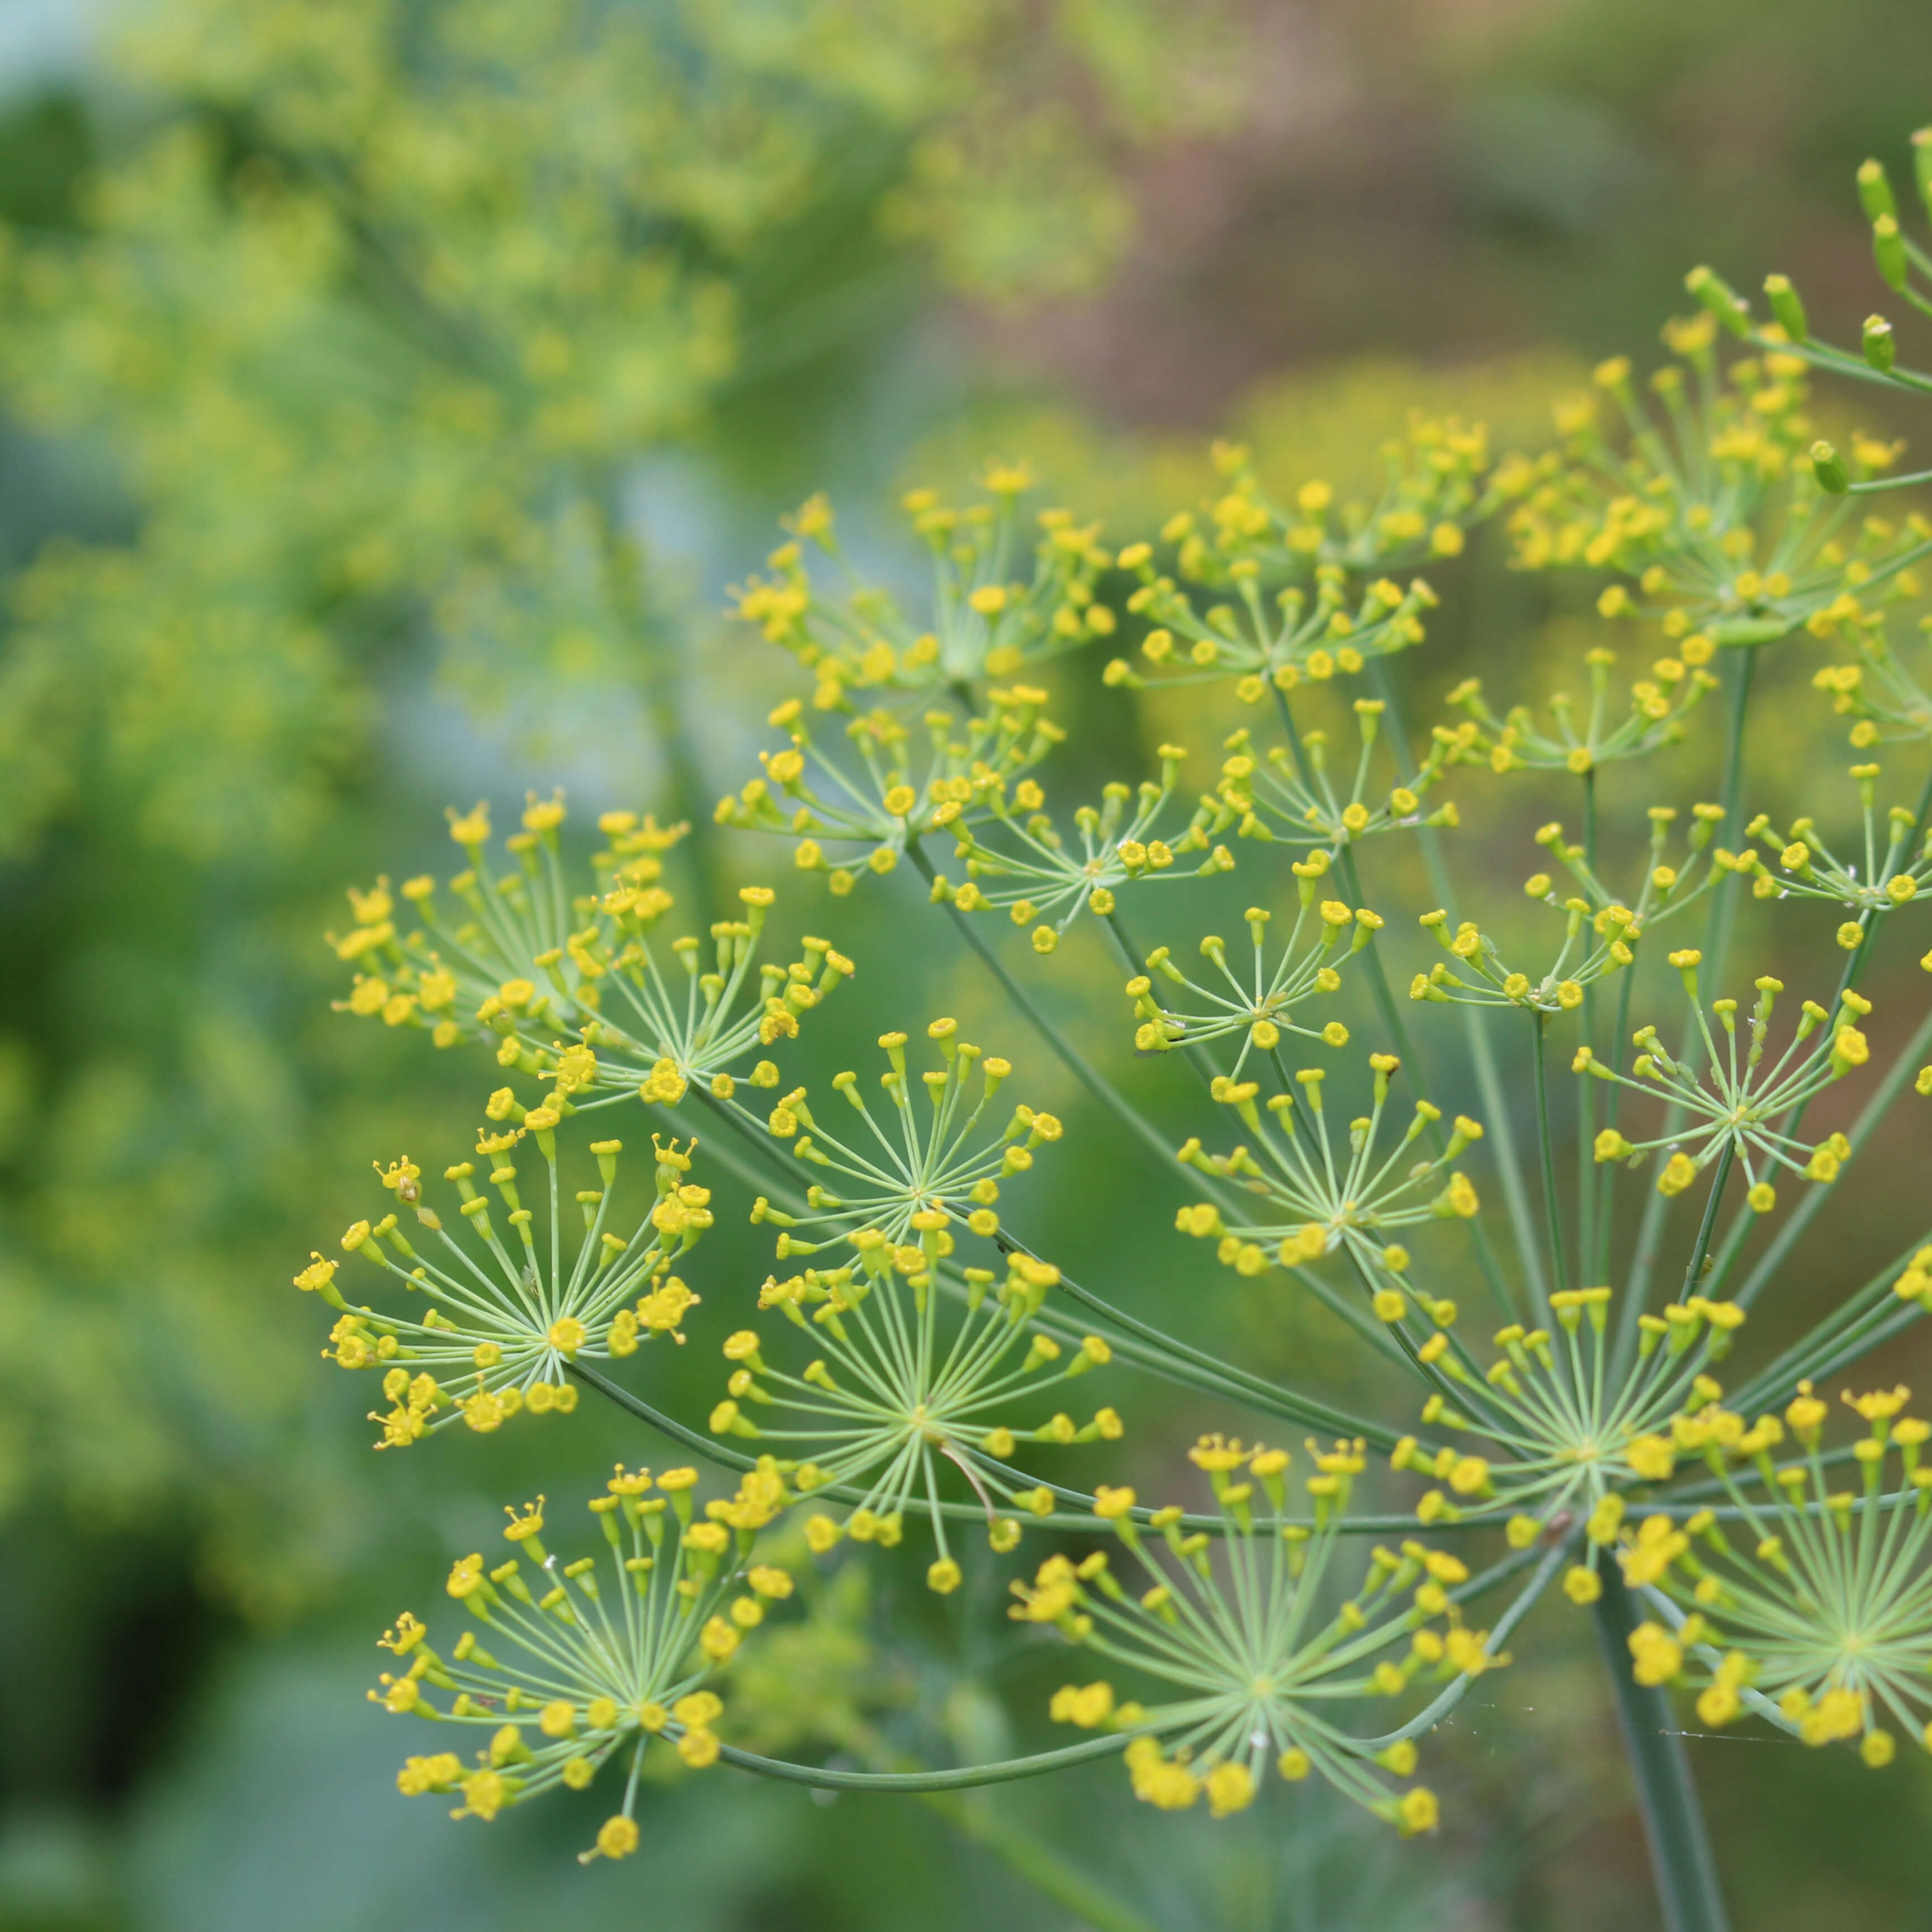 dill flower screens with yellow flowers and green stems. Close-up of a screen with another blurry one in the background.